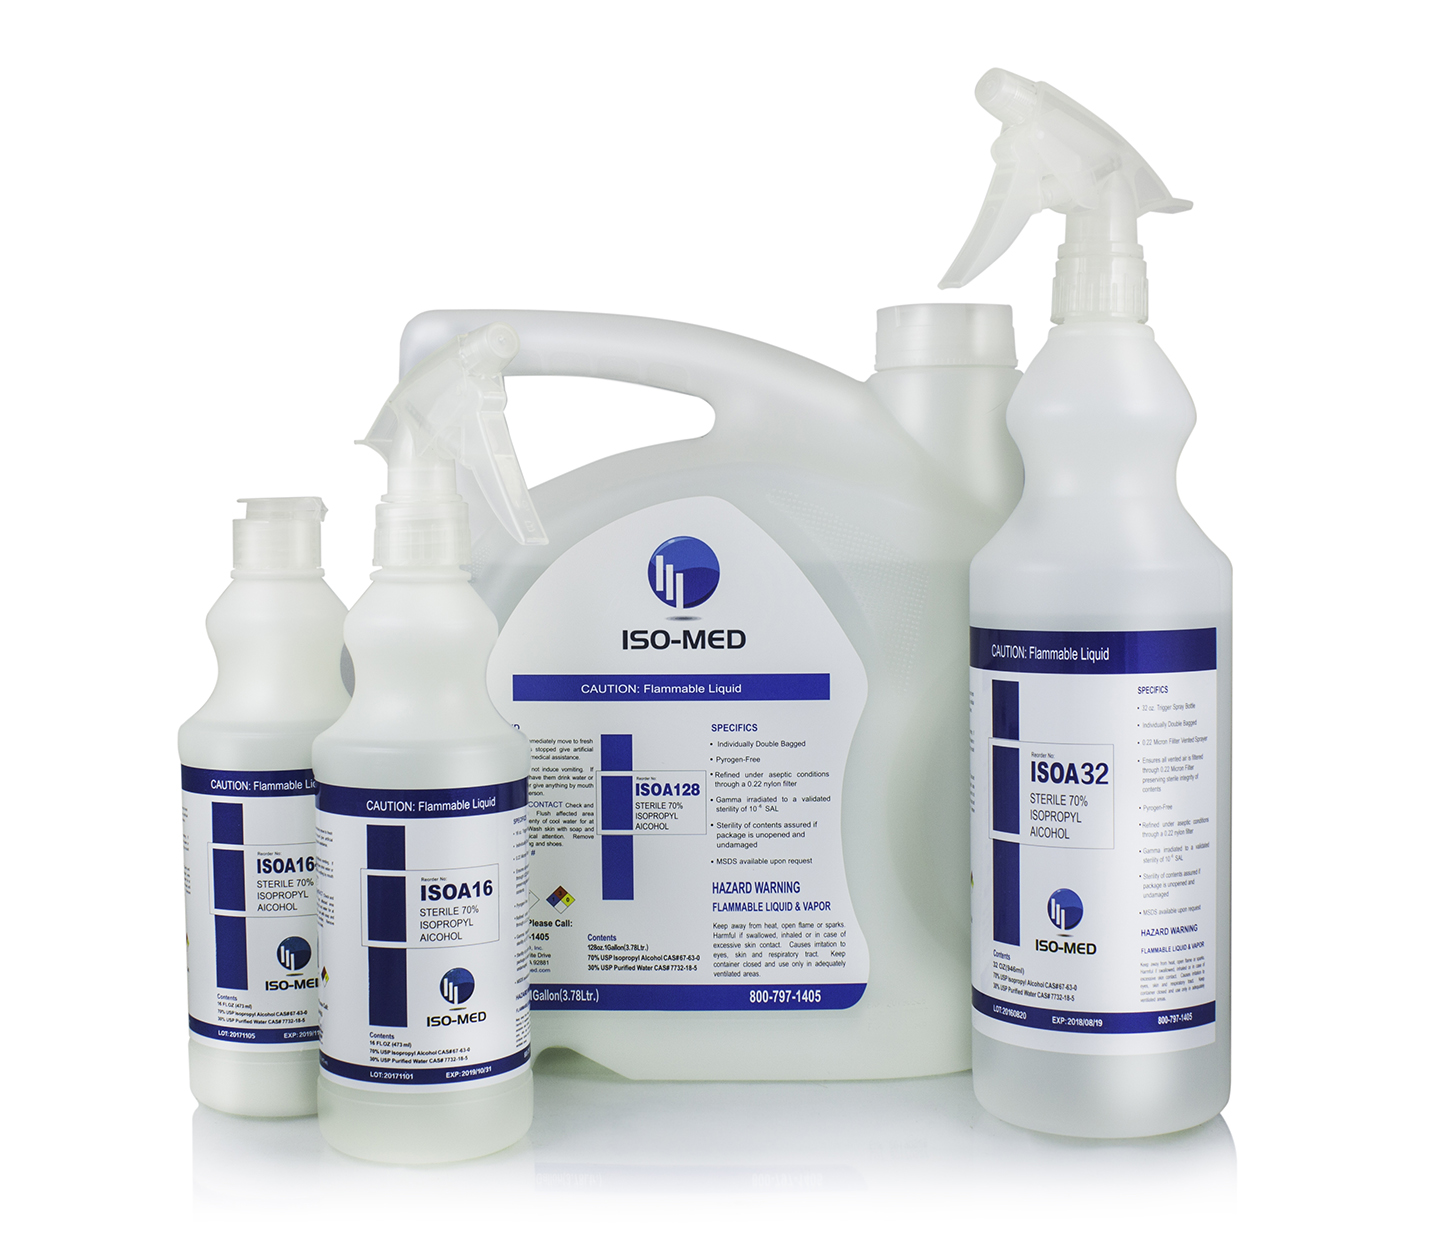 Sterile 70% Alcohol | ISO-MED, INC